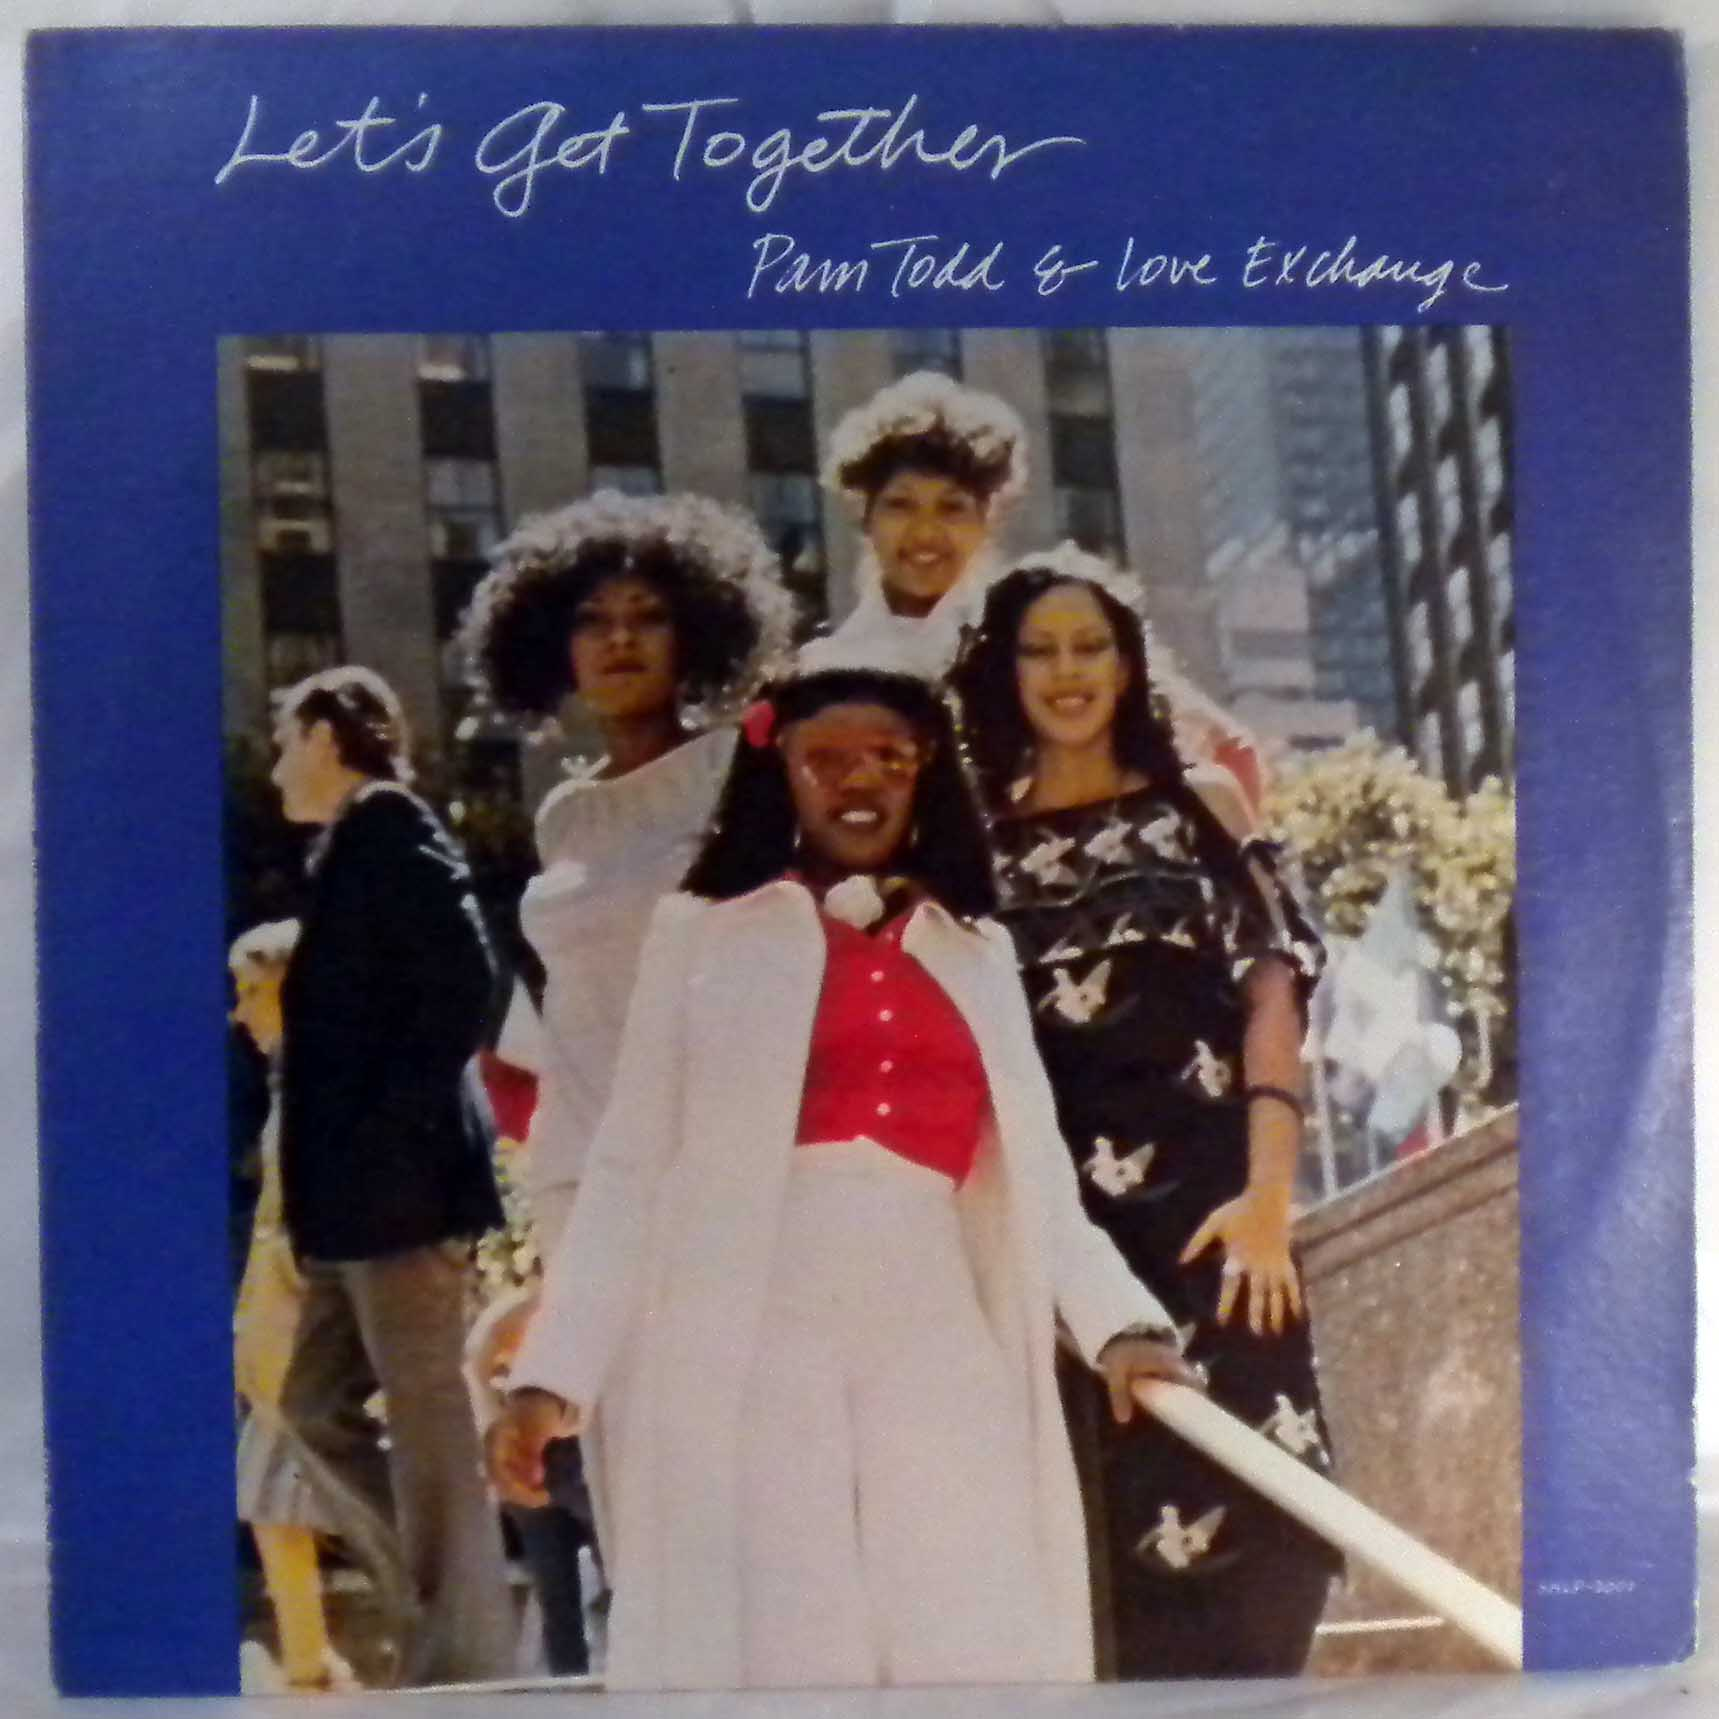 PAM TODD AND LOVE EXCHANGE - Let's get together - 33T